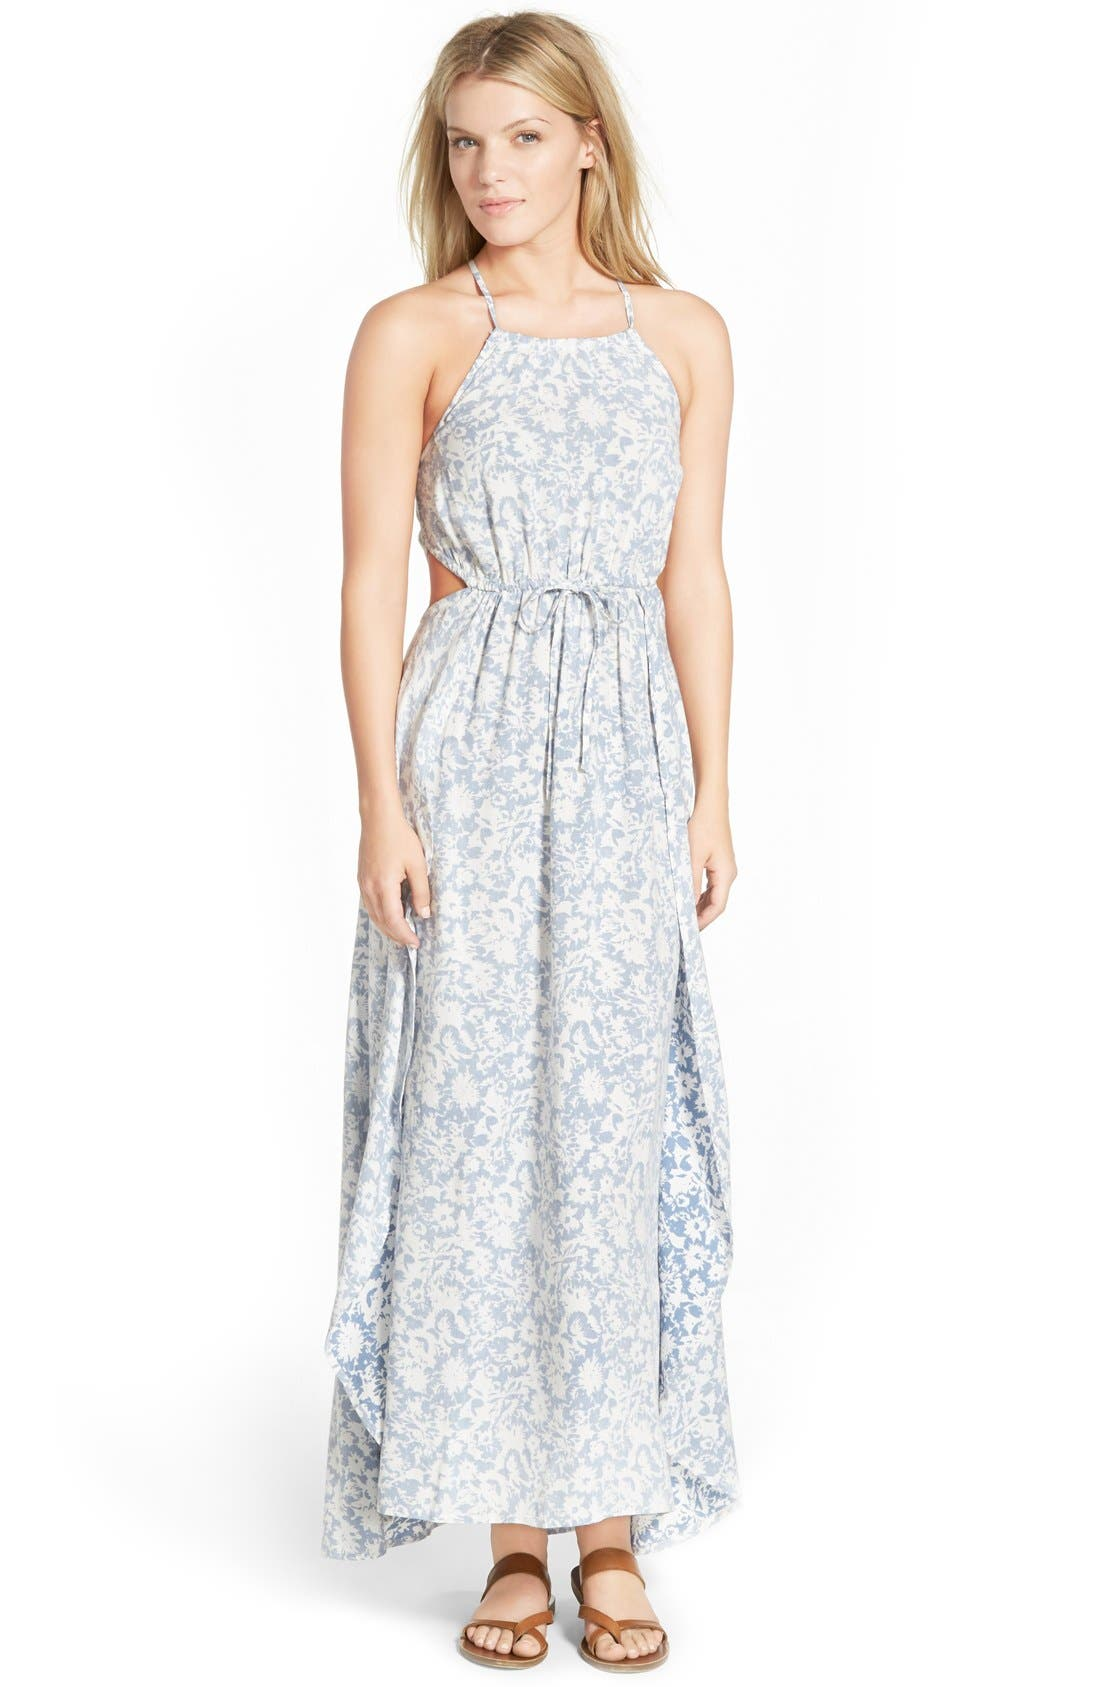 Alternate Image 1 Selected - Billabong 'Sounds of the Sea' Floral Maxi Dress